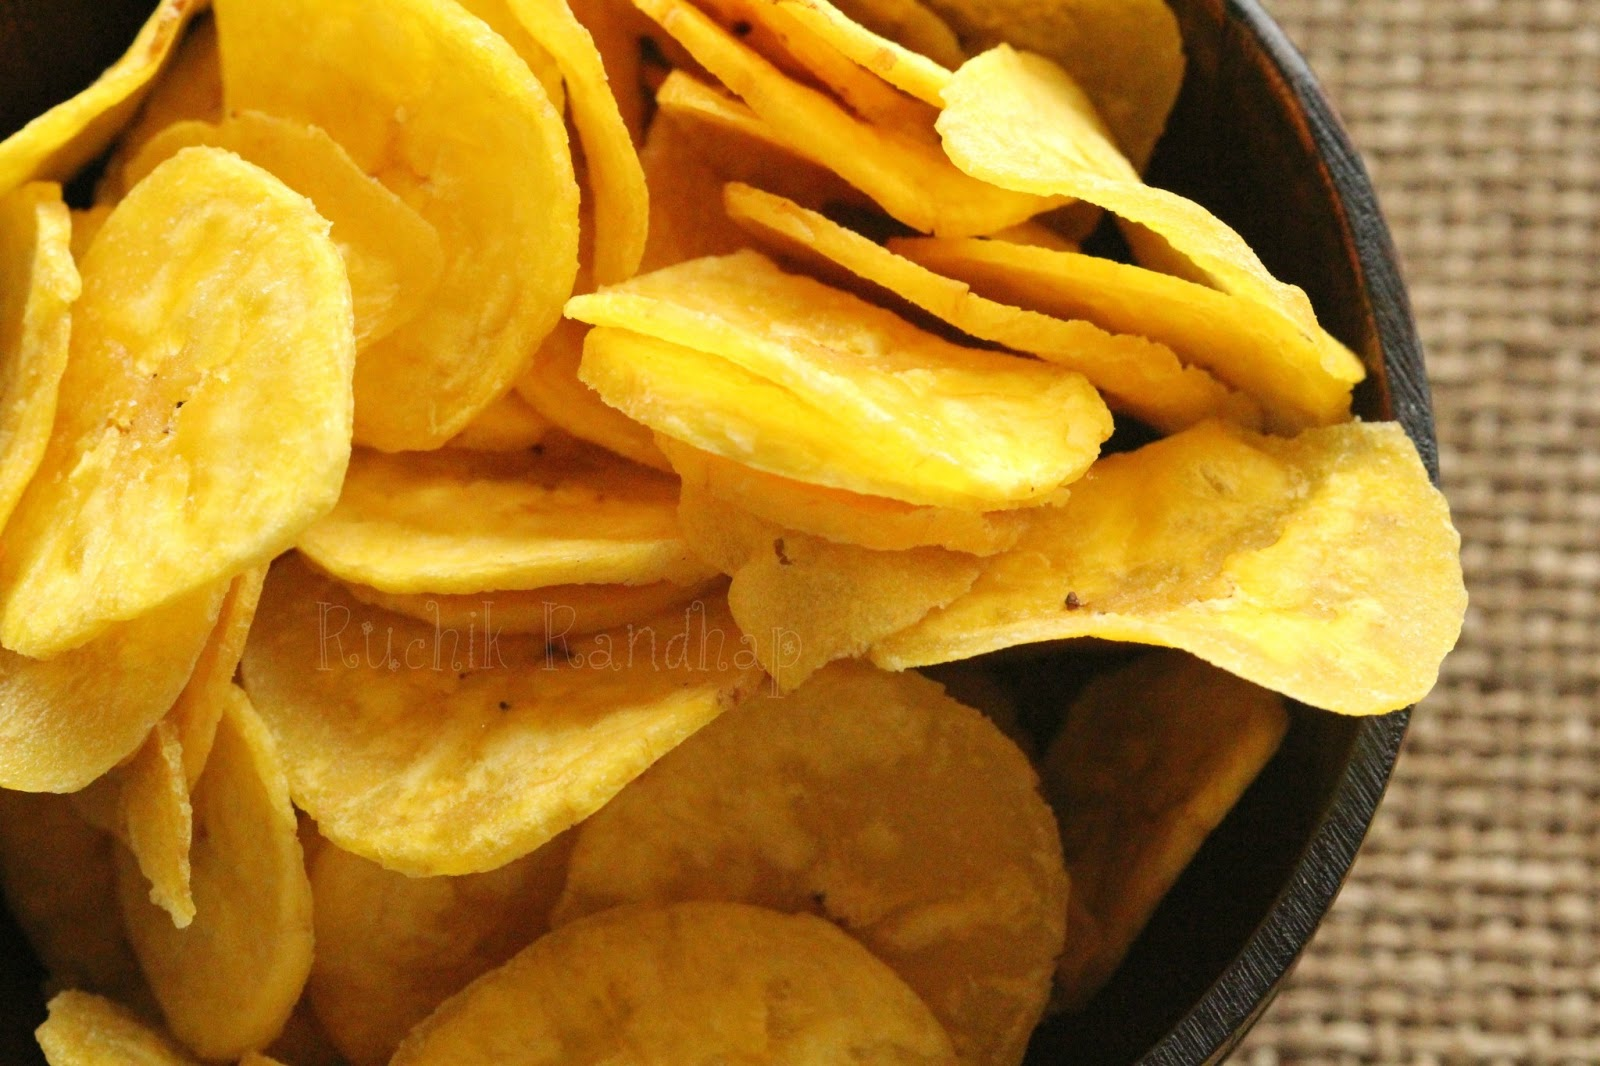 Are Banana Chips Good For Dogs